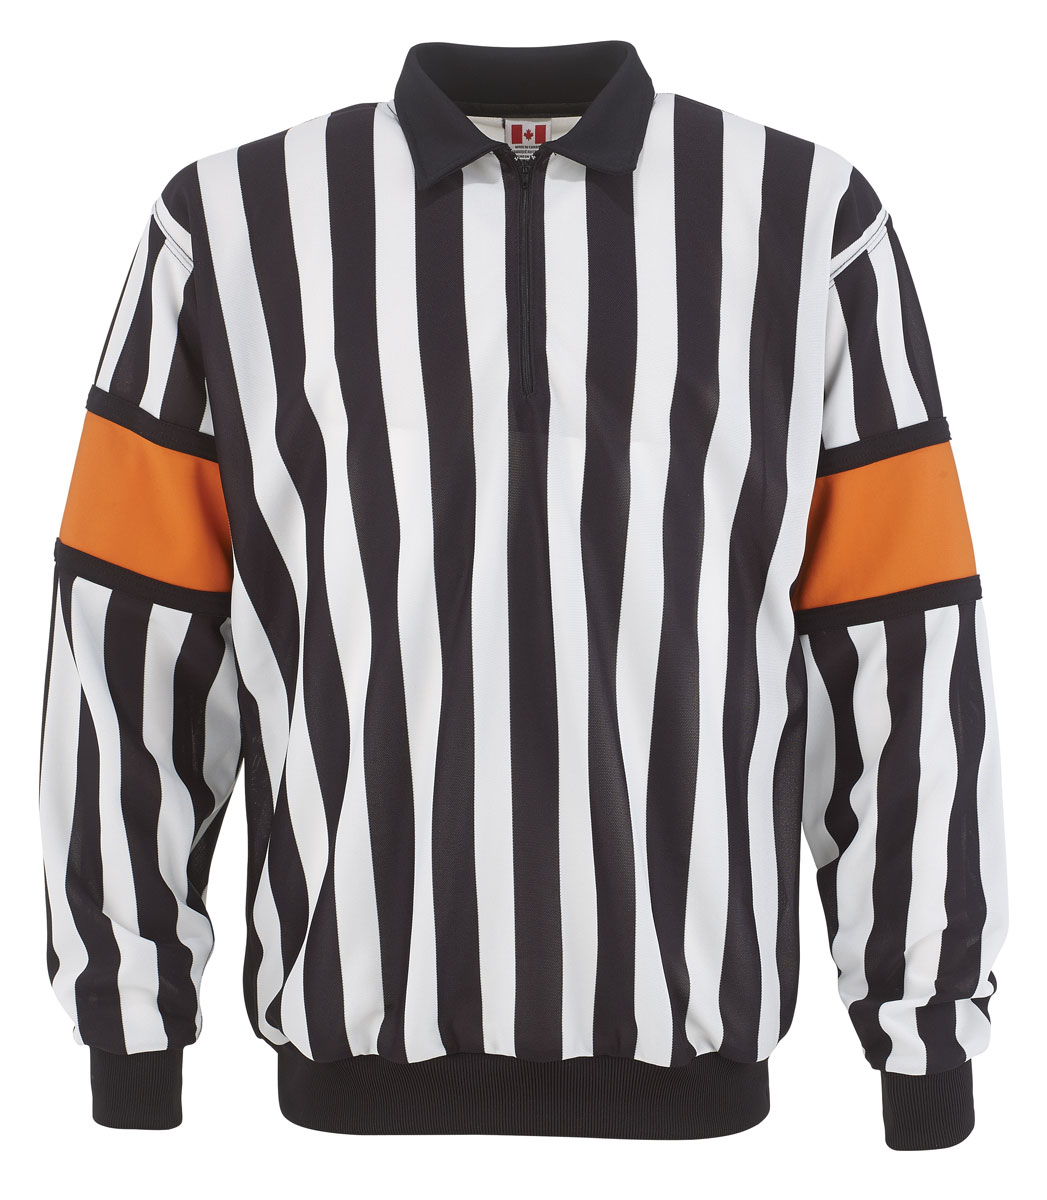 763dd947851 Add to My Lists. CCM Pro Referee Jersey w/ Sewn-On Orange Armbands